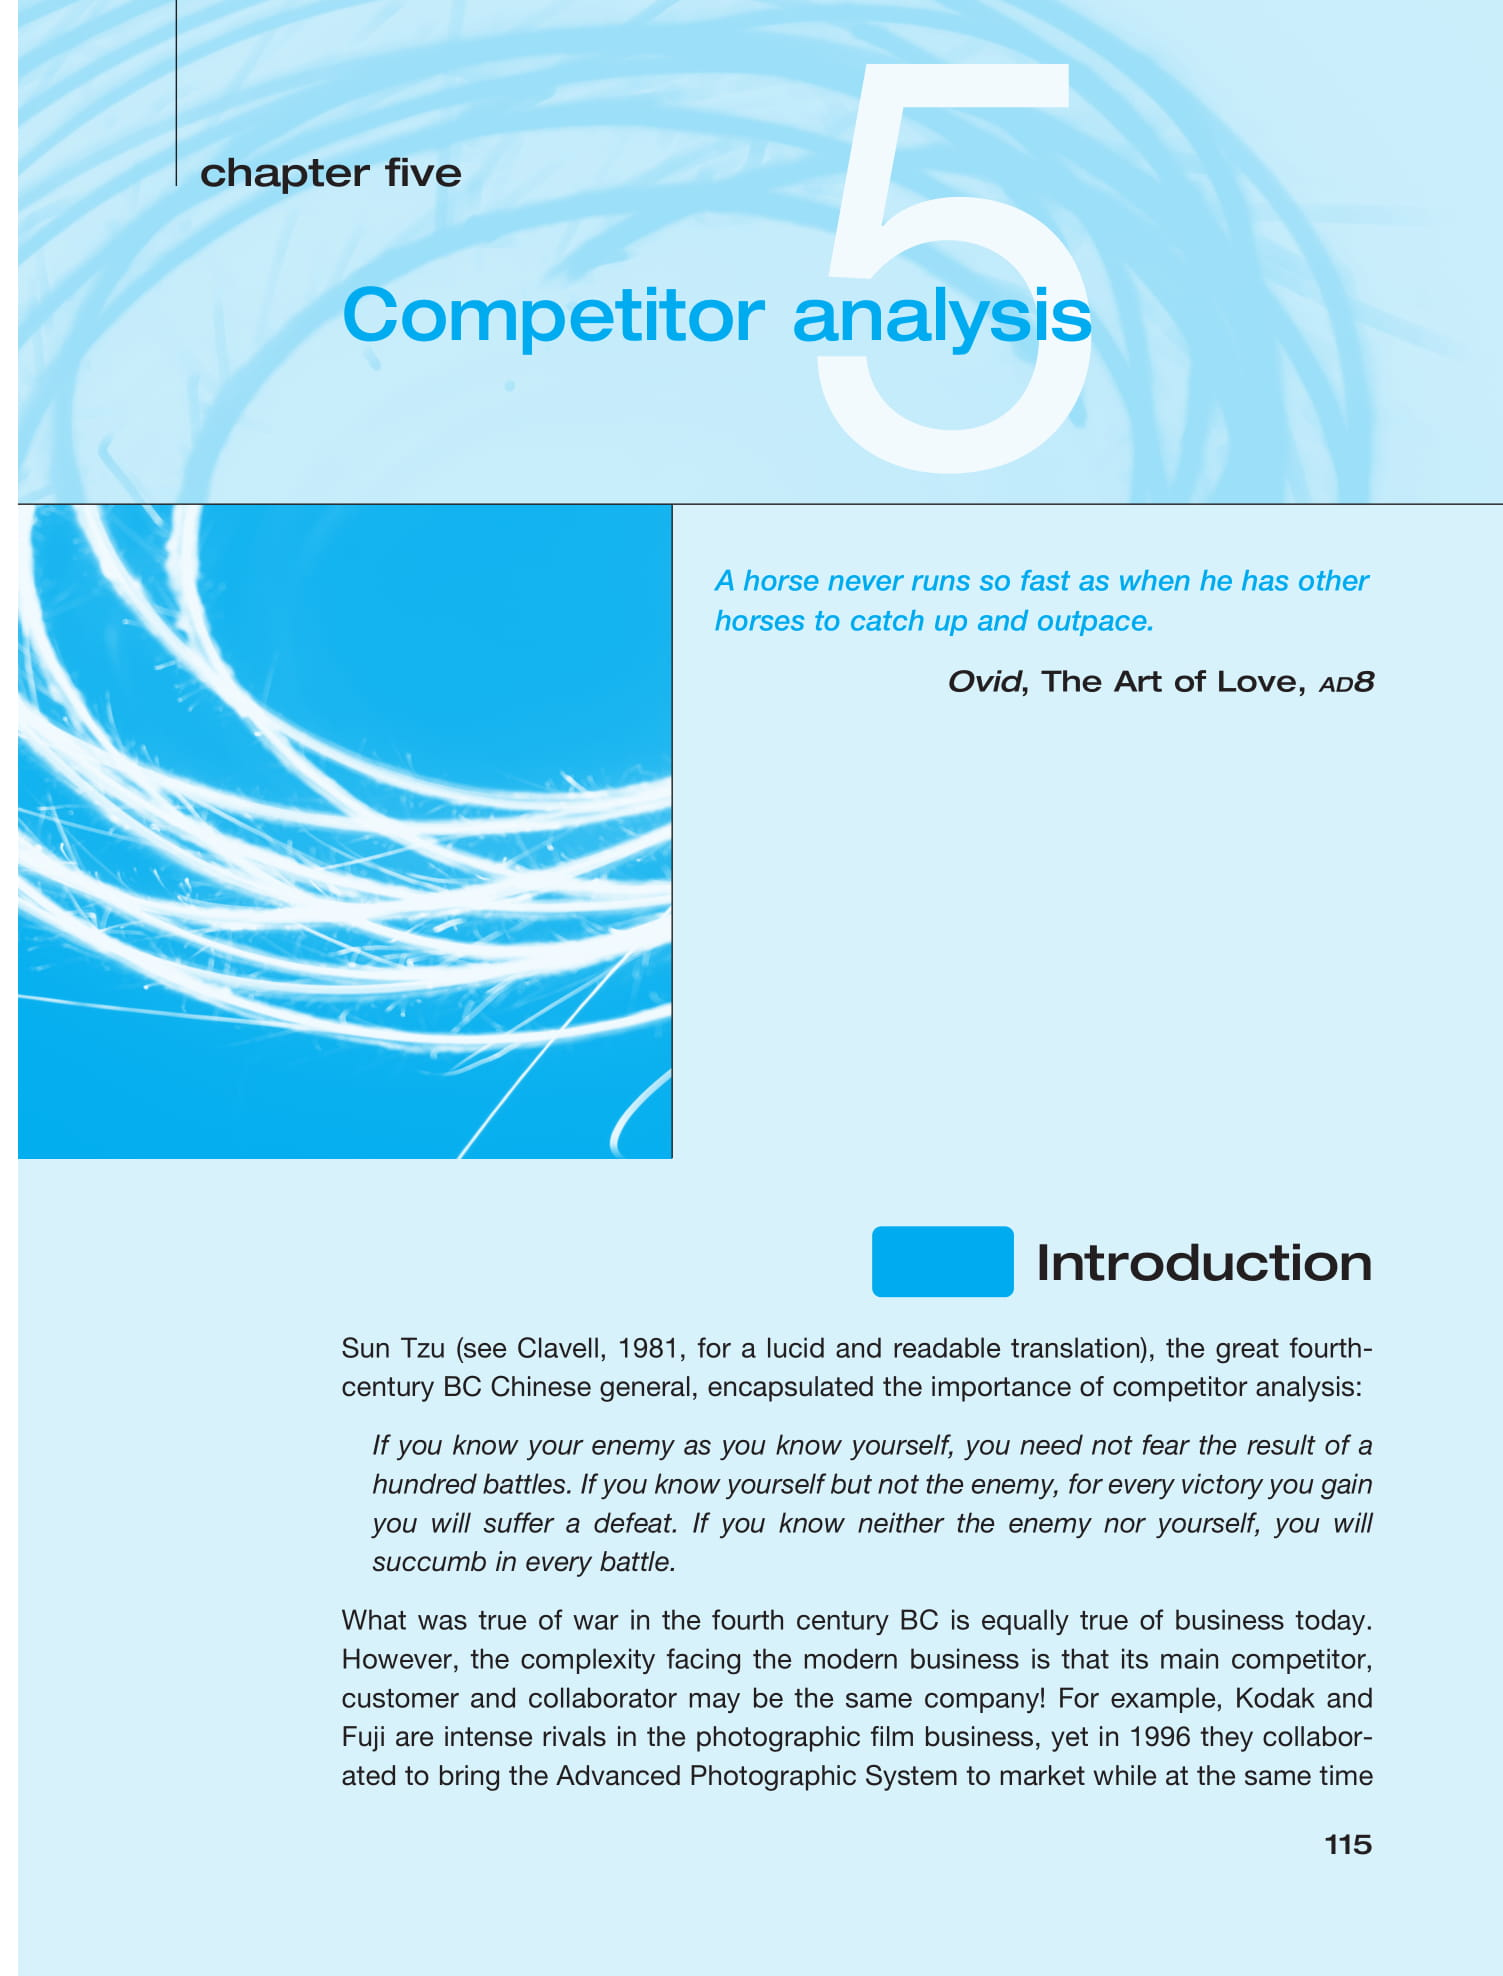 comprehensive competitor analysis report example 01